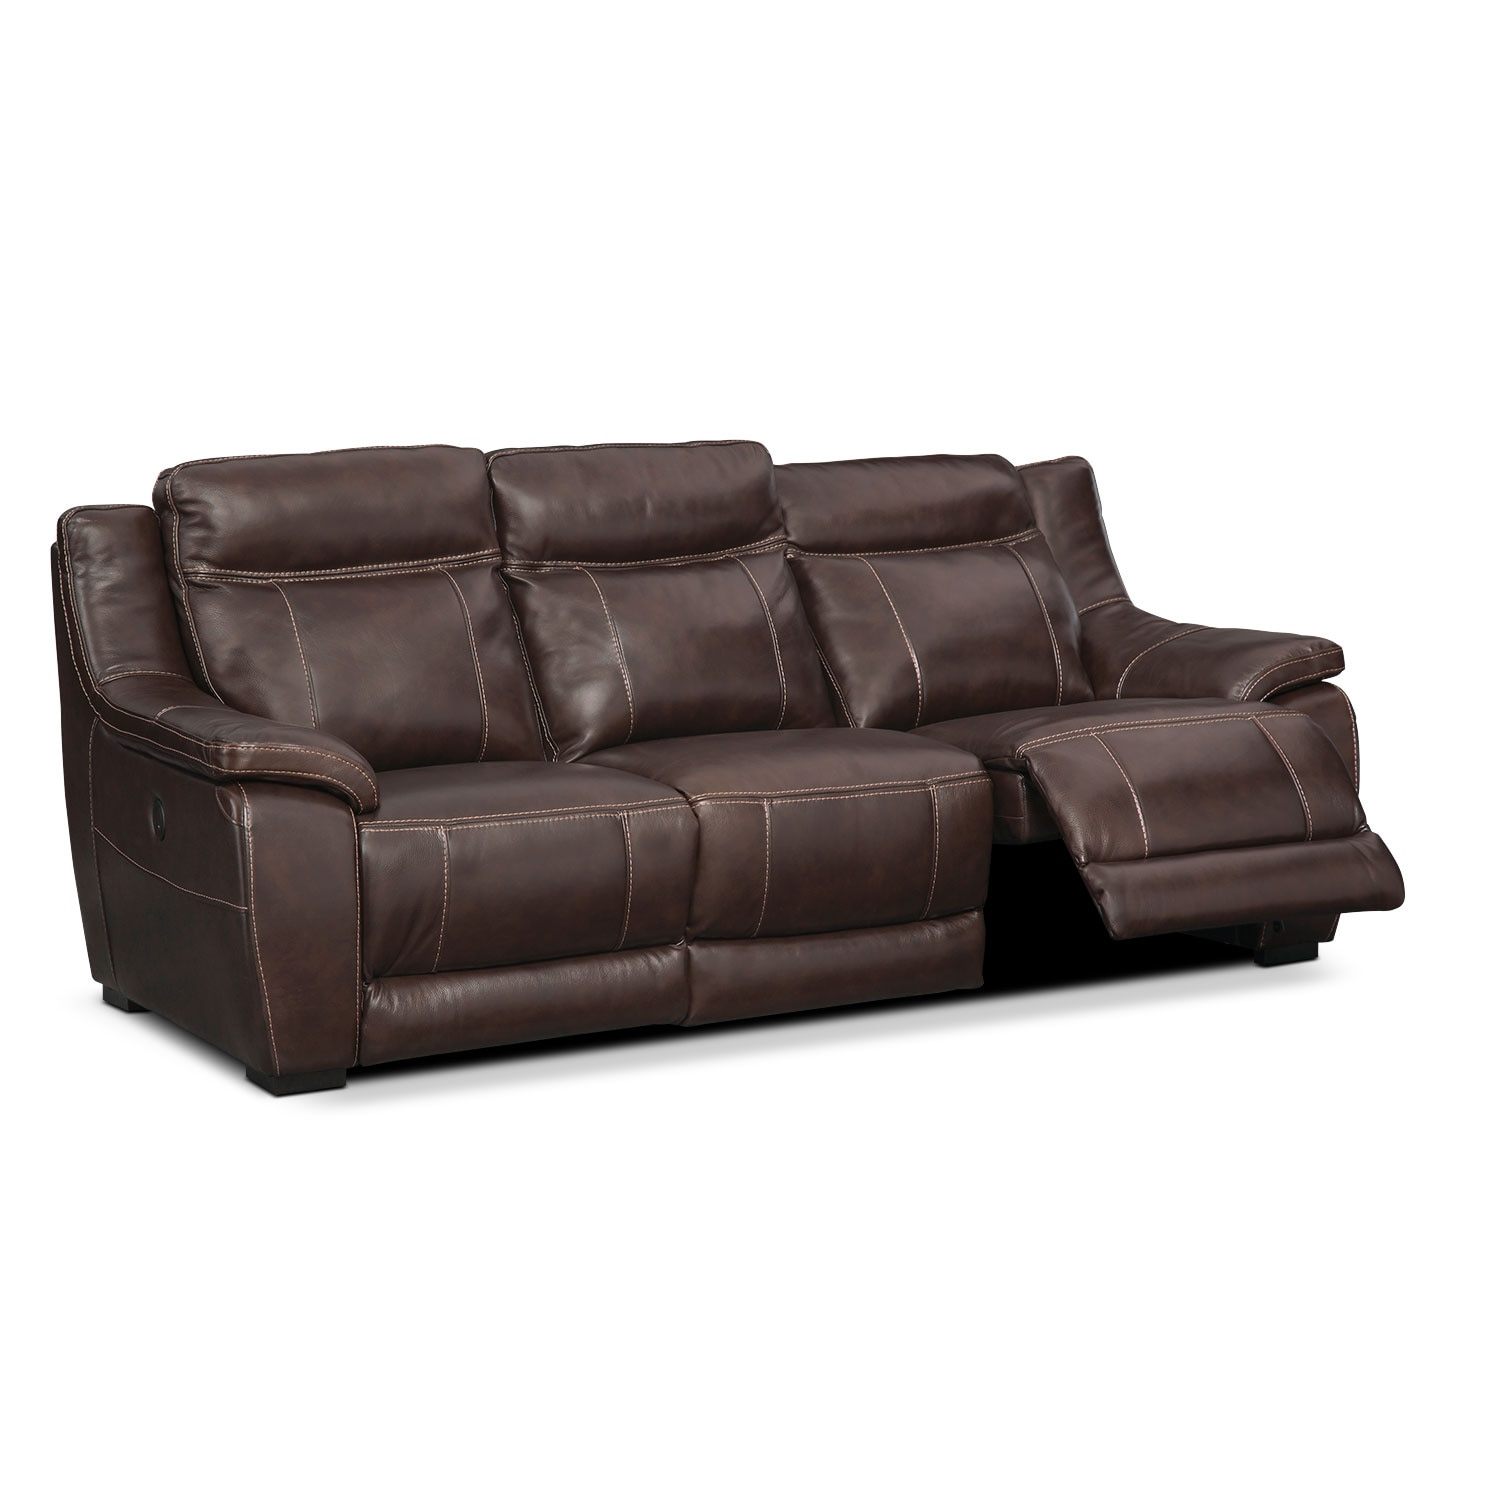 Lido Power Reclining Sofa Brown American Signature Furniture ~ Baycliffe Reclining Sofa Reviews